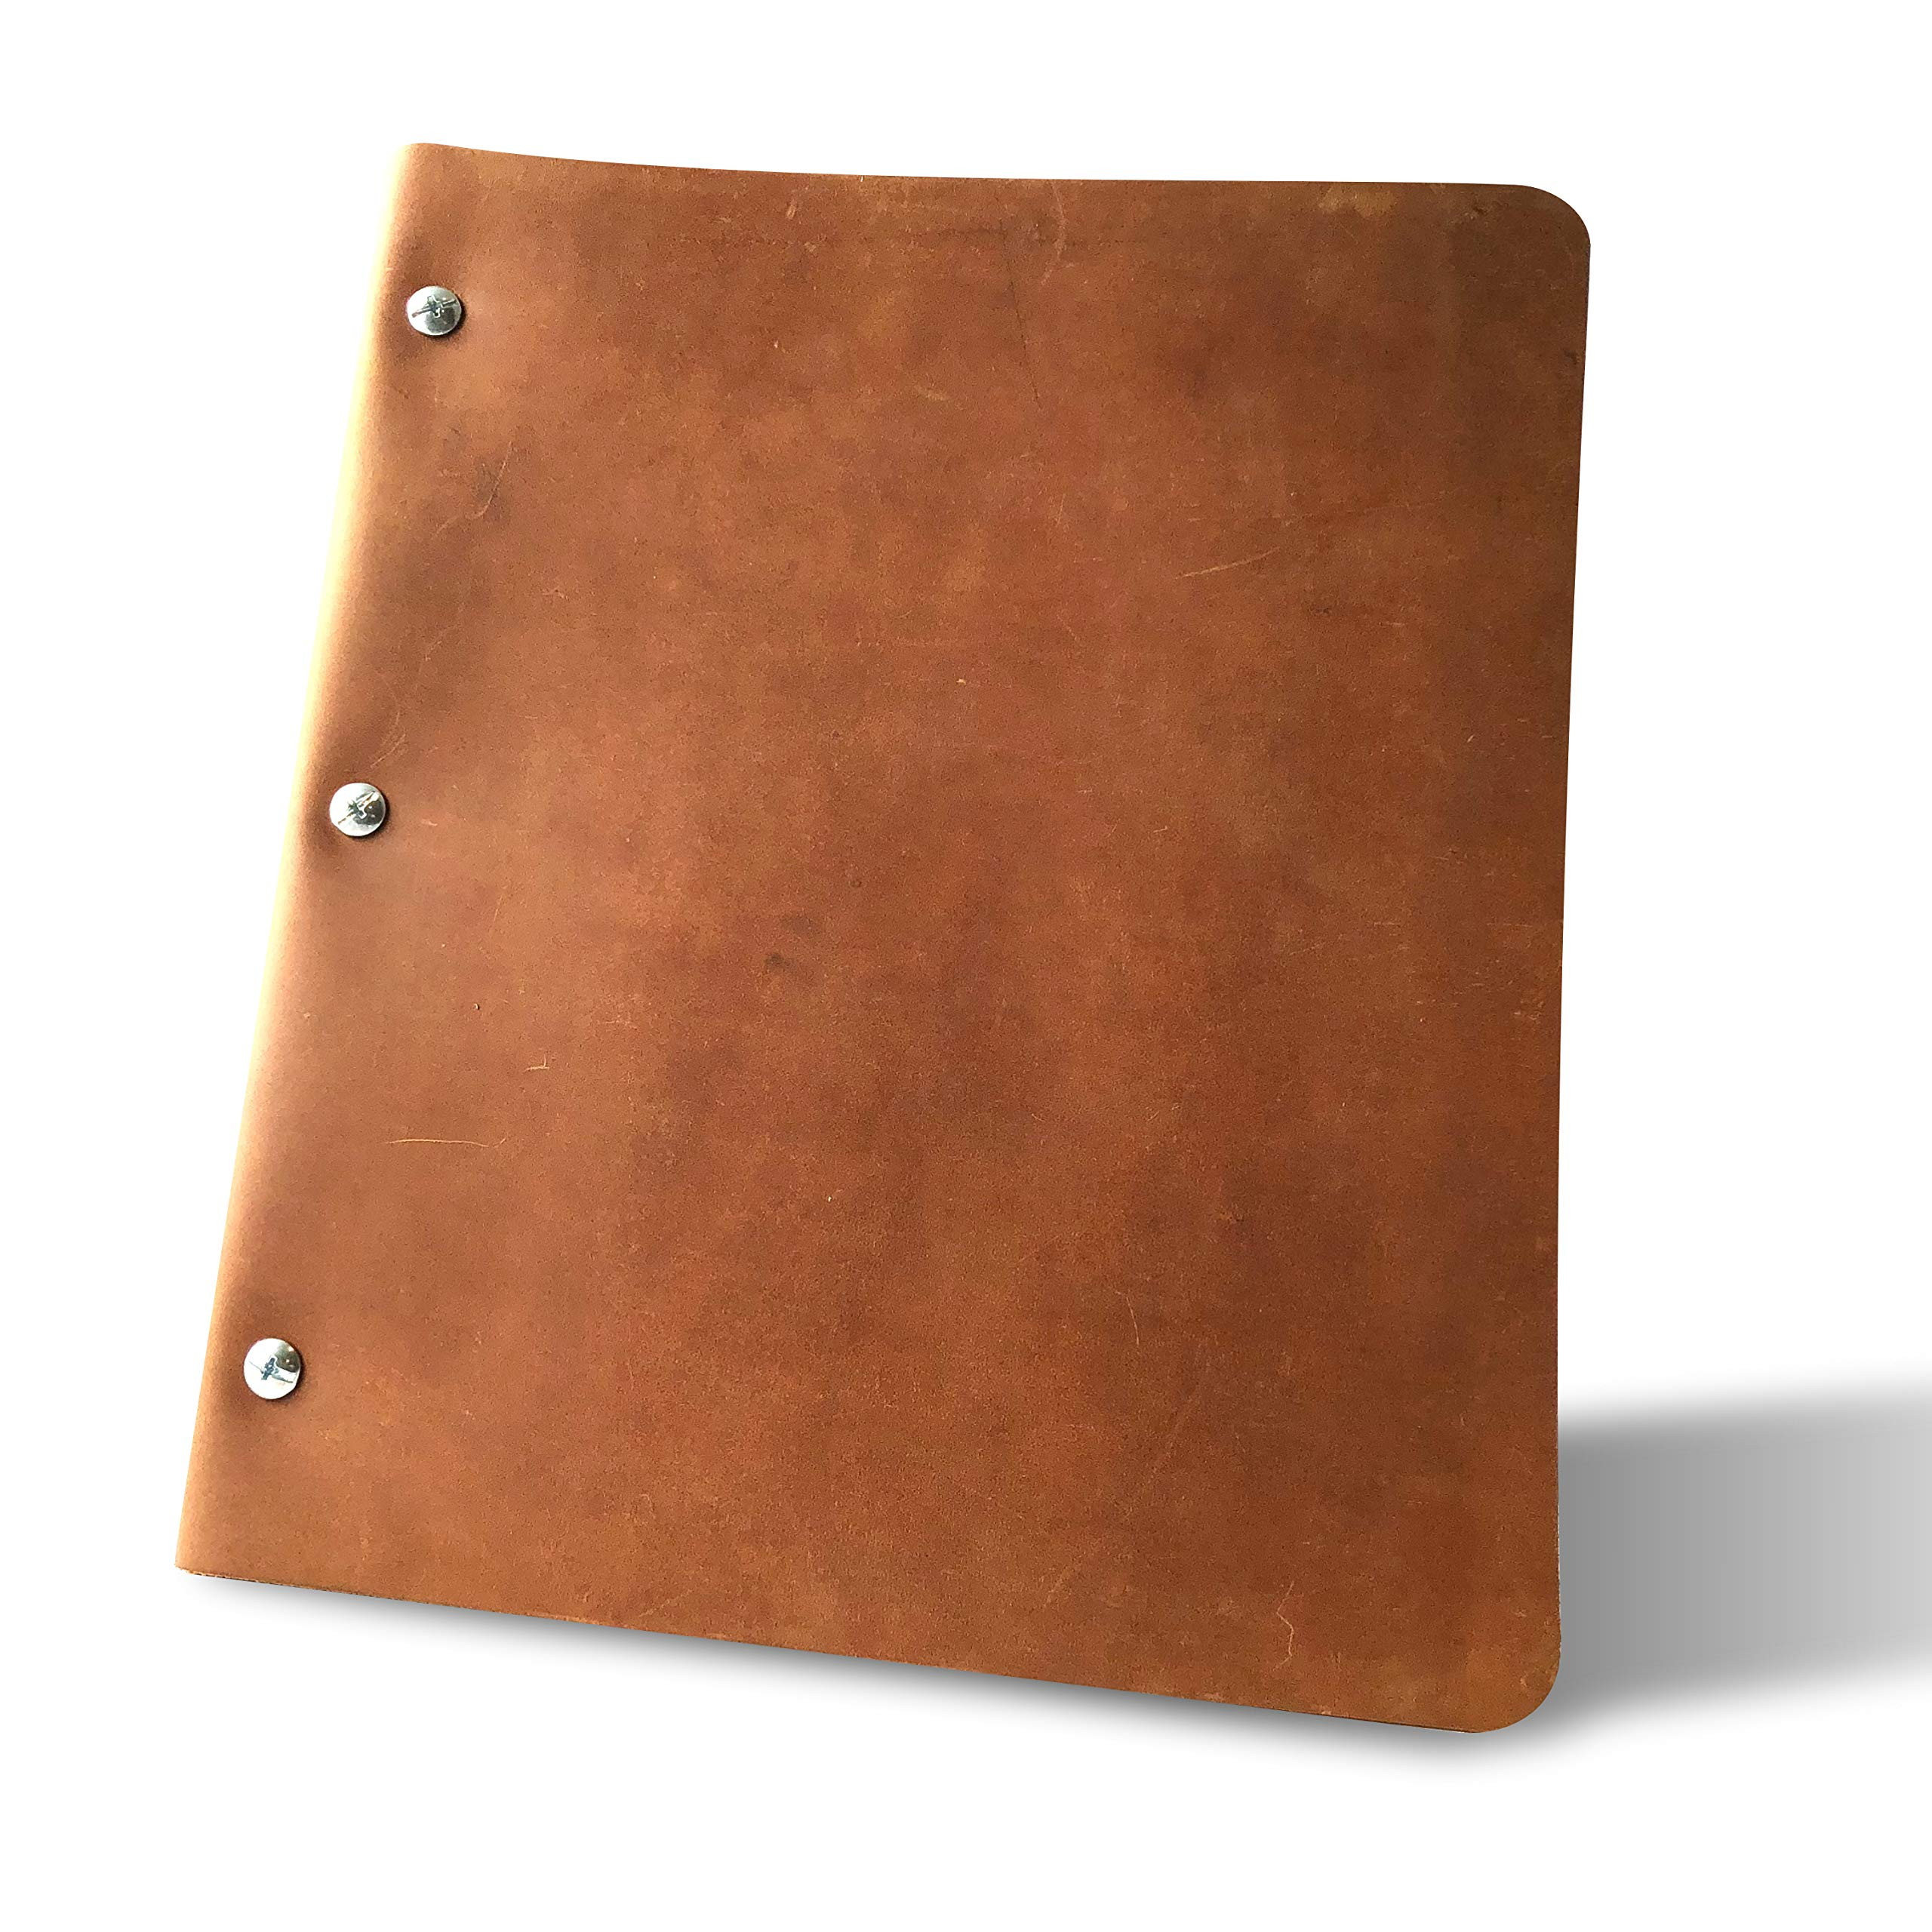 Murdy No. 1 Leather Binder (Wide Cut, Chestnut) by Murdy Creative Co